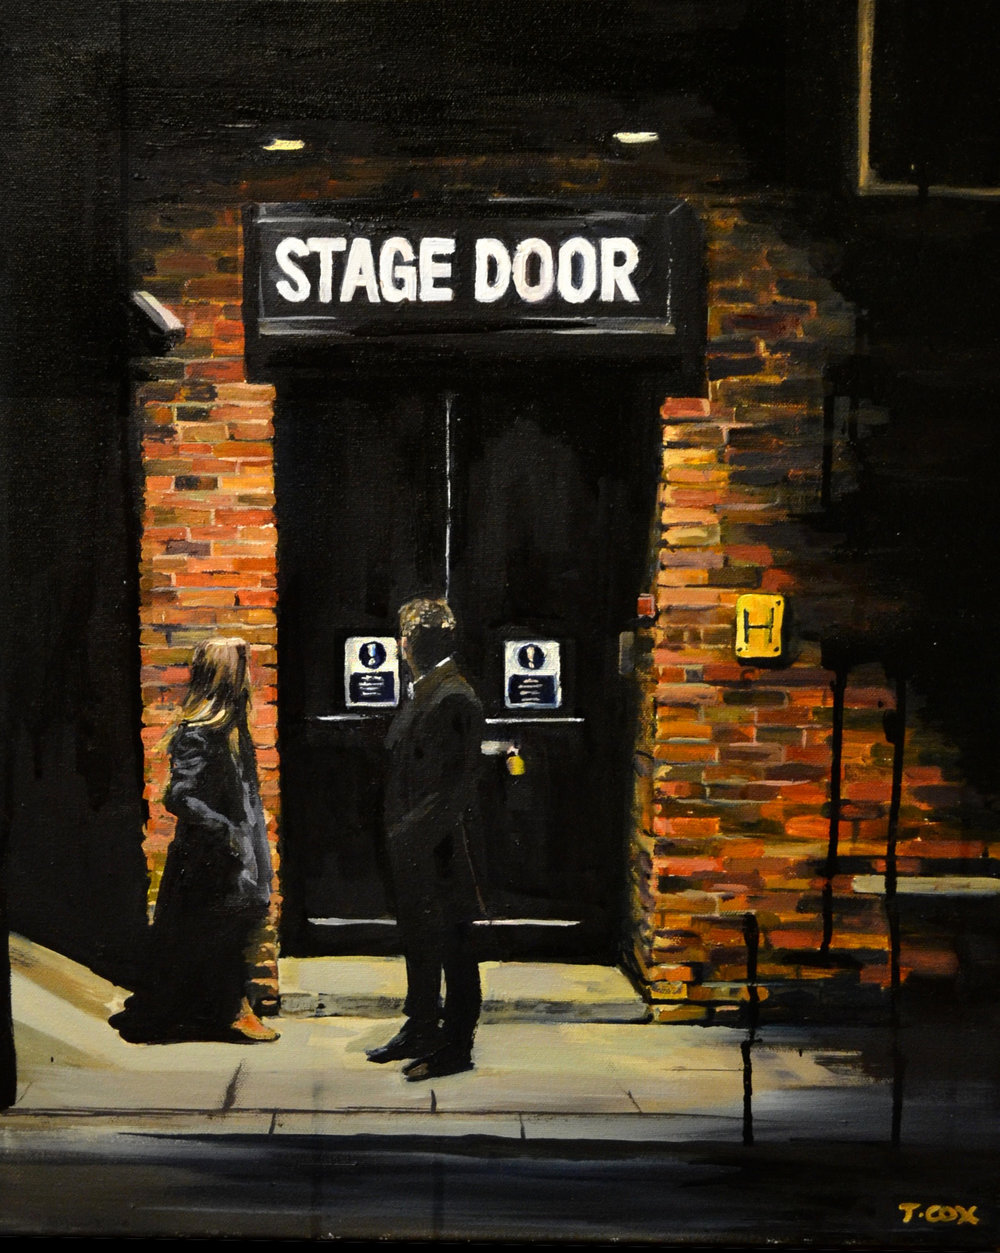 Stage Door, 2015. Ink and oil on canvas. Sold to private collectors in Seattle, USA.